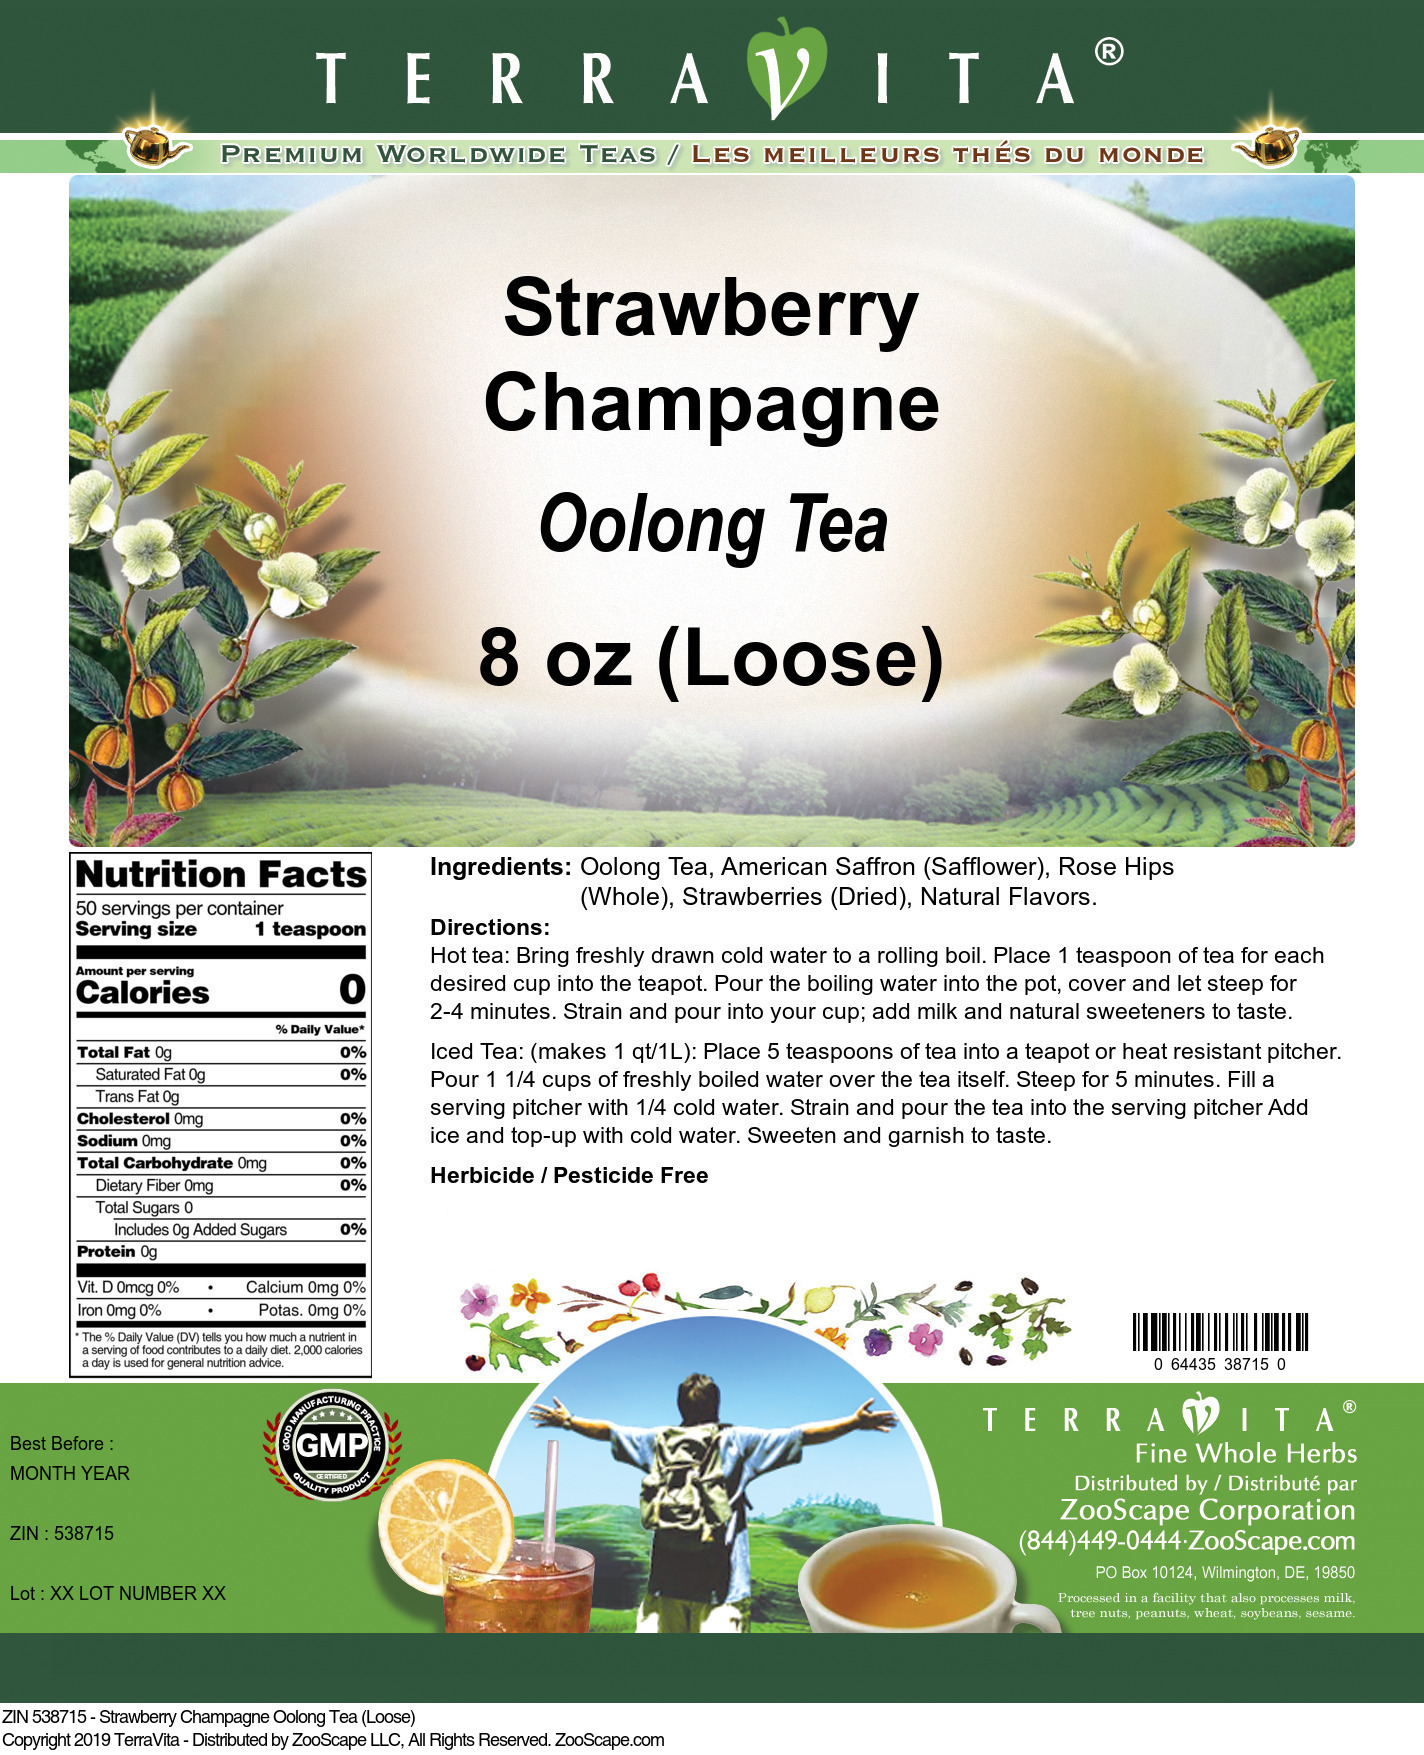 Strawberry Champagne Oolong Tea (Loose)